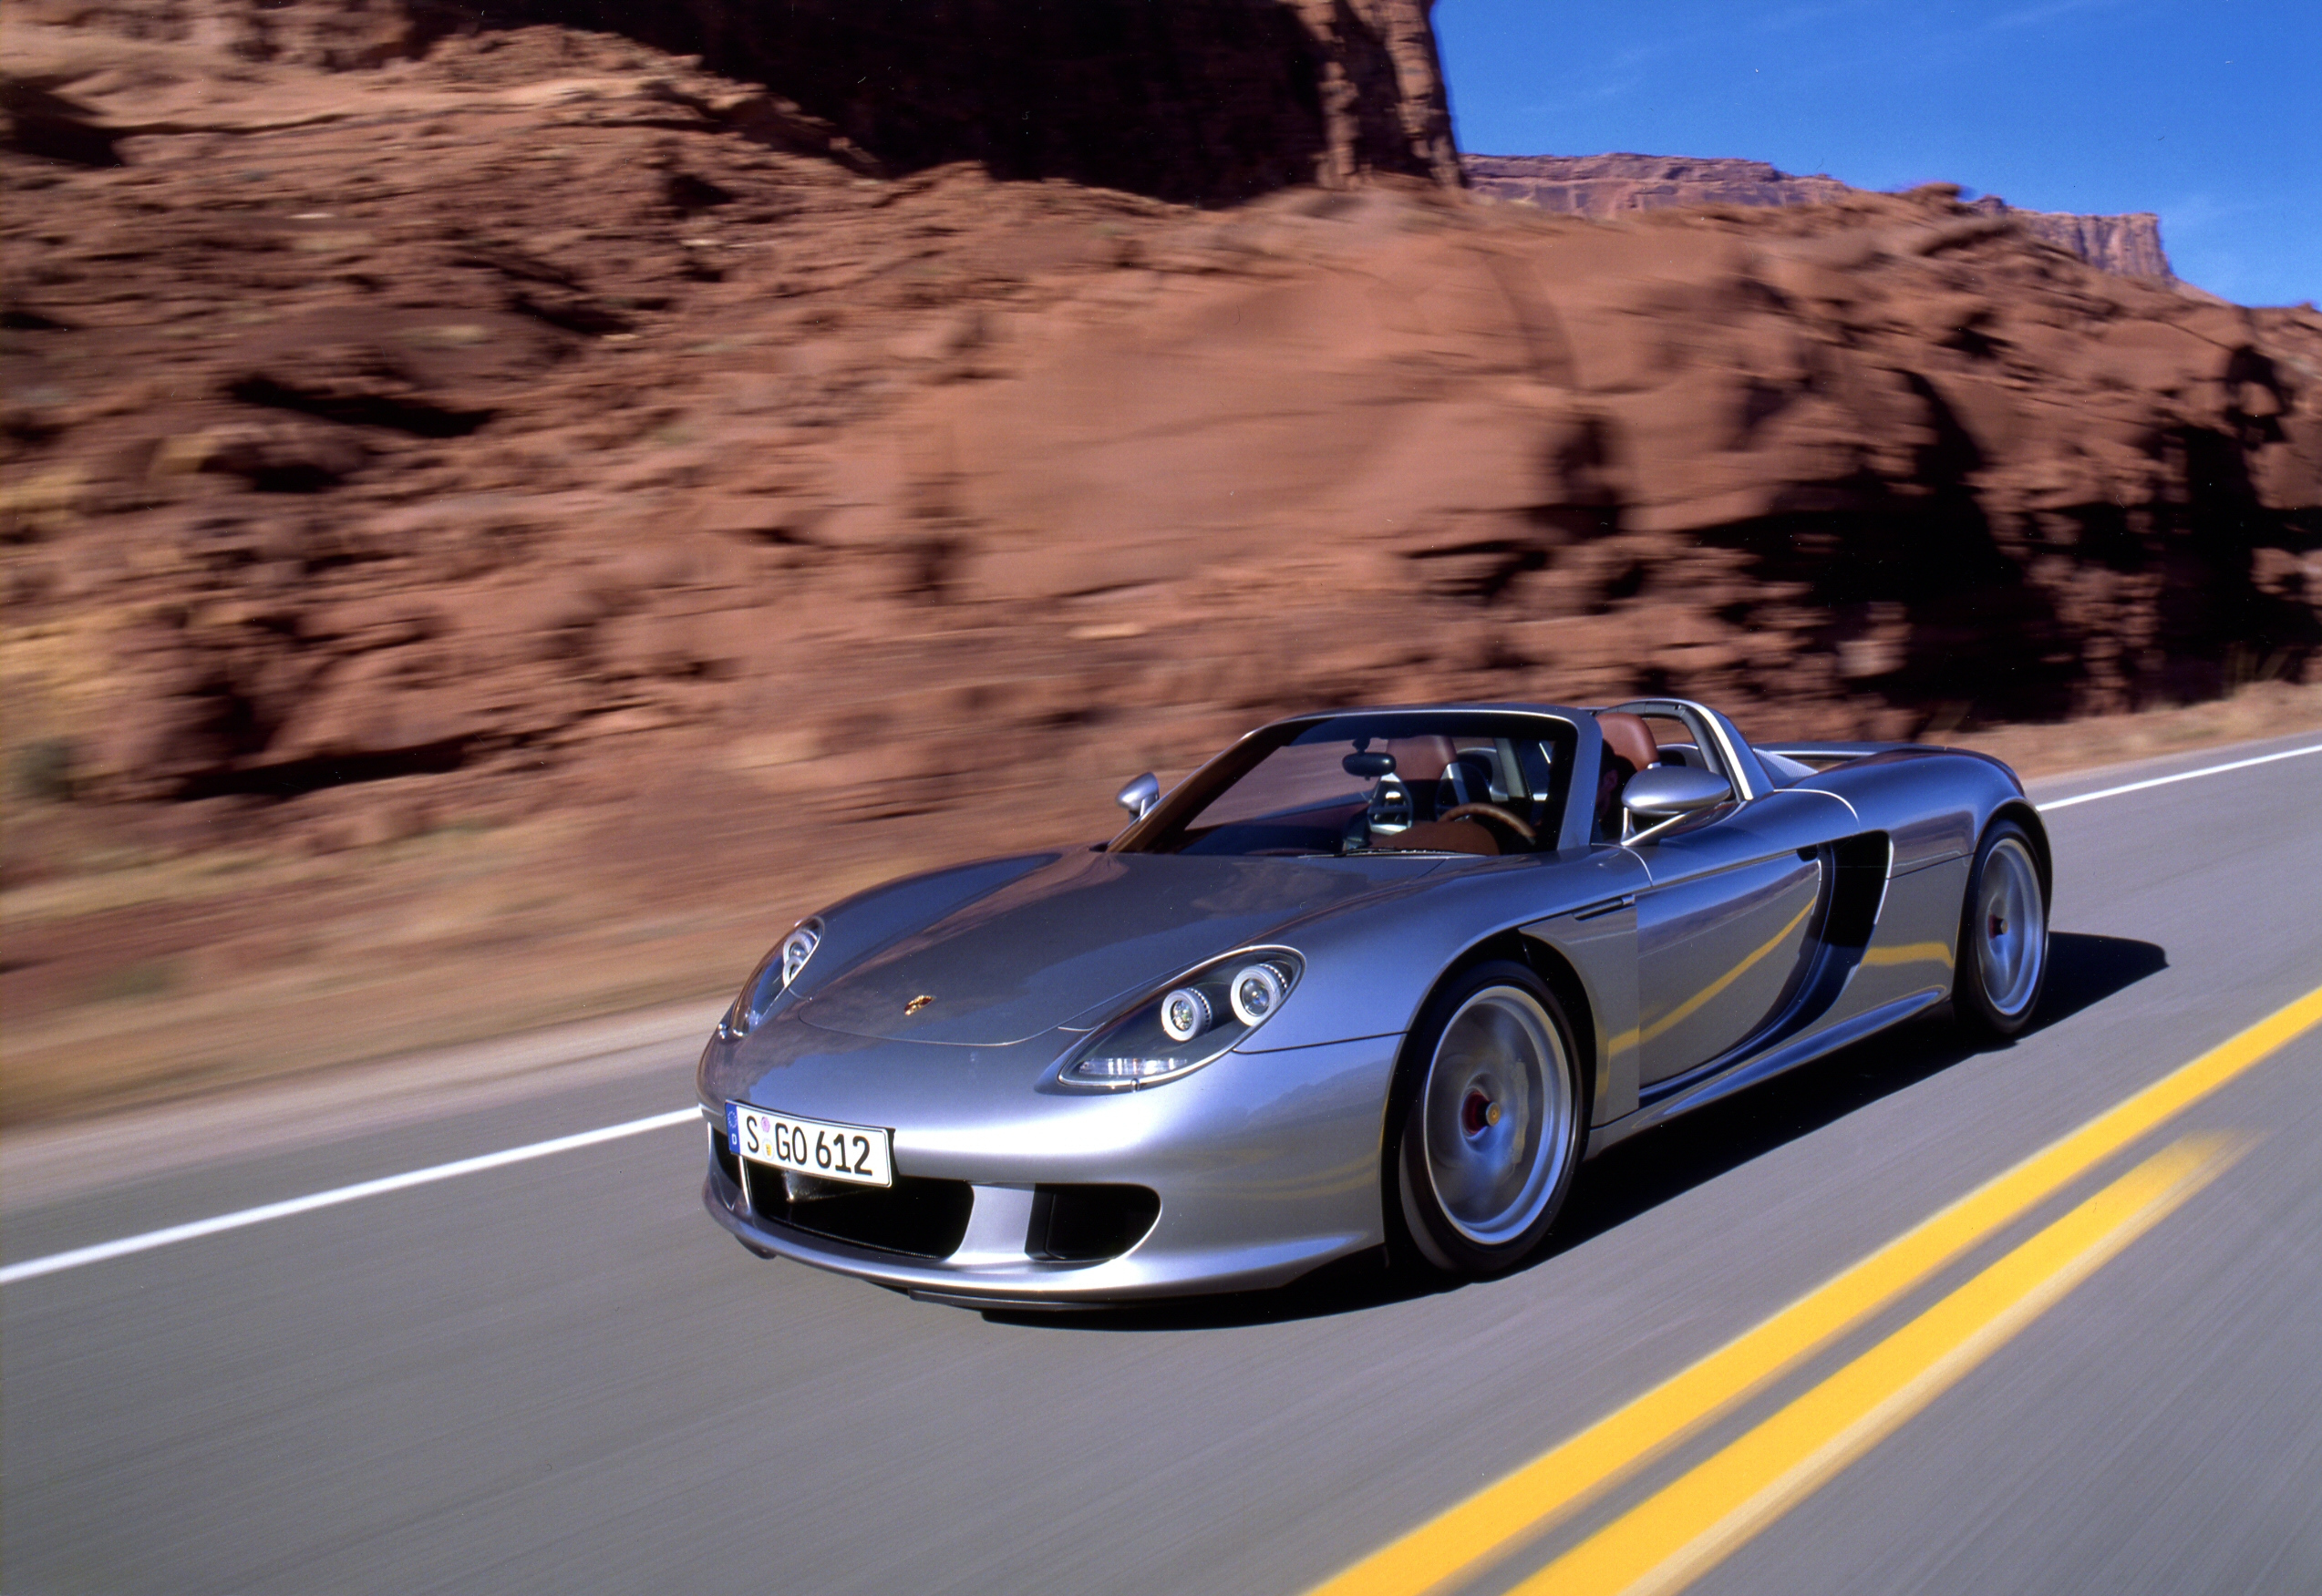 The Carrera GT was one of Porsche's most high-tech cars at the time